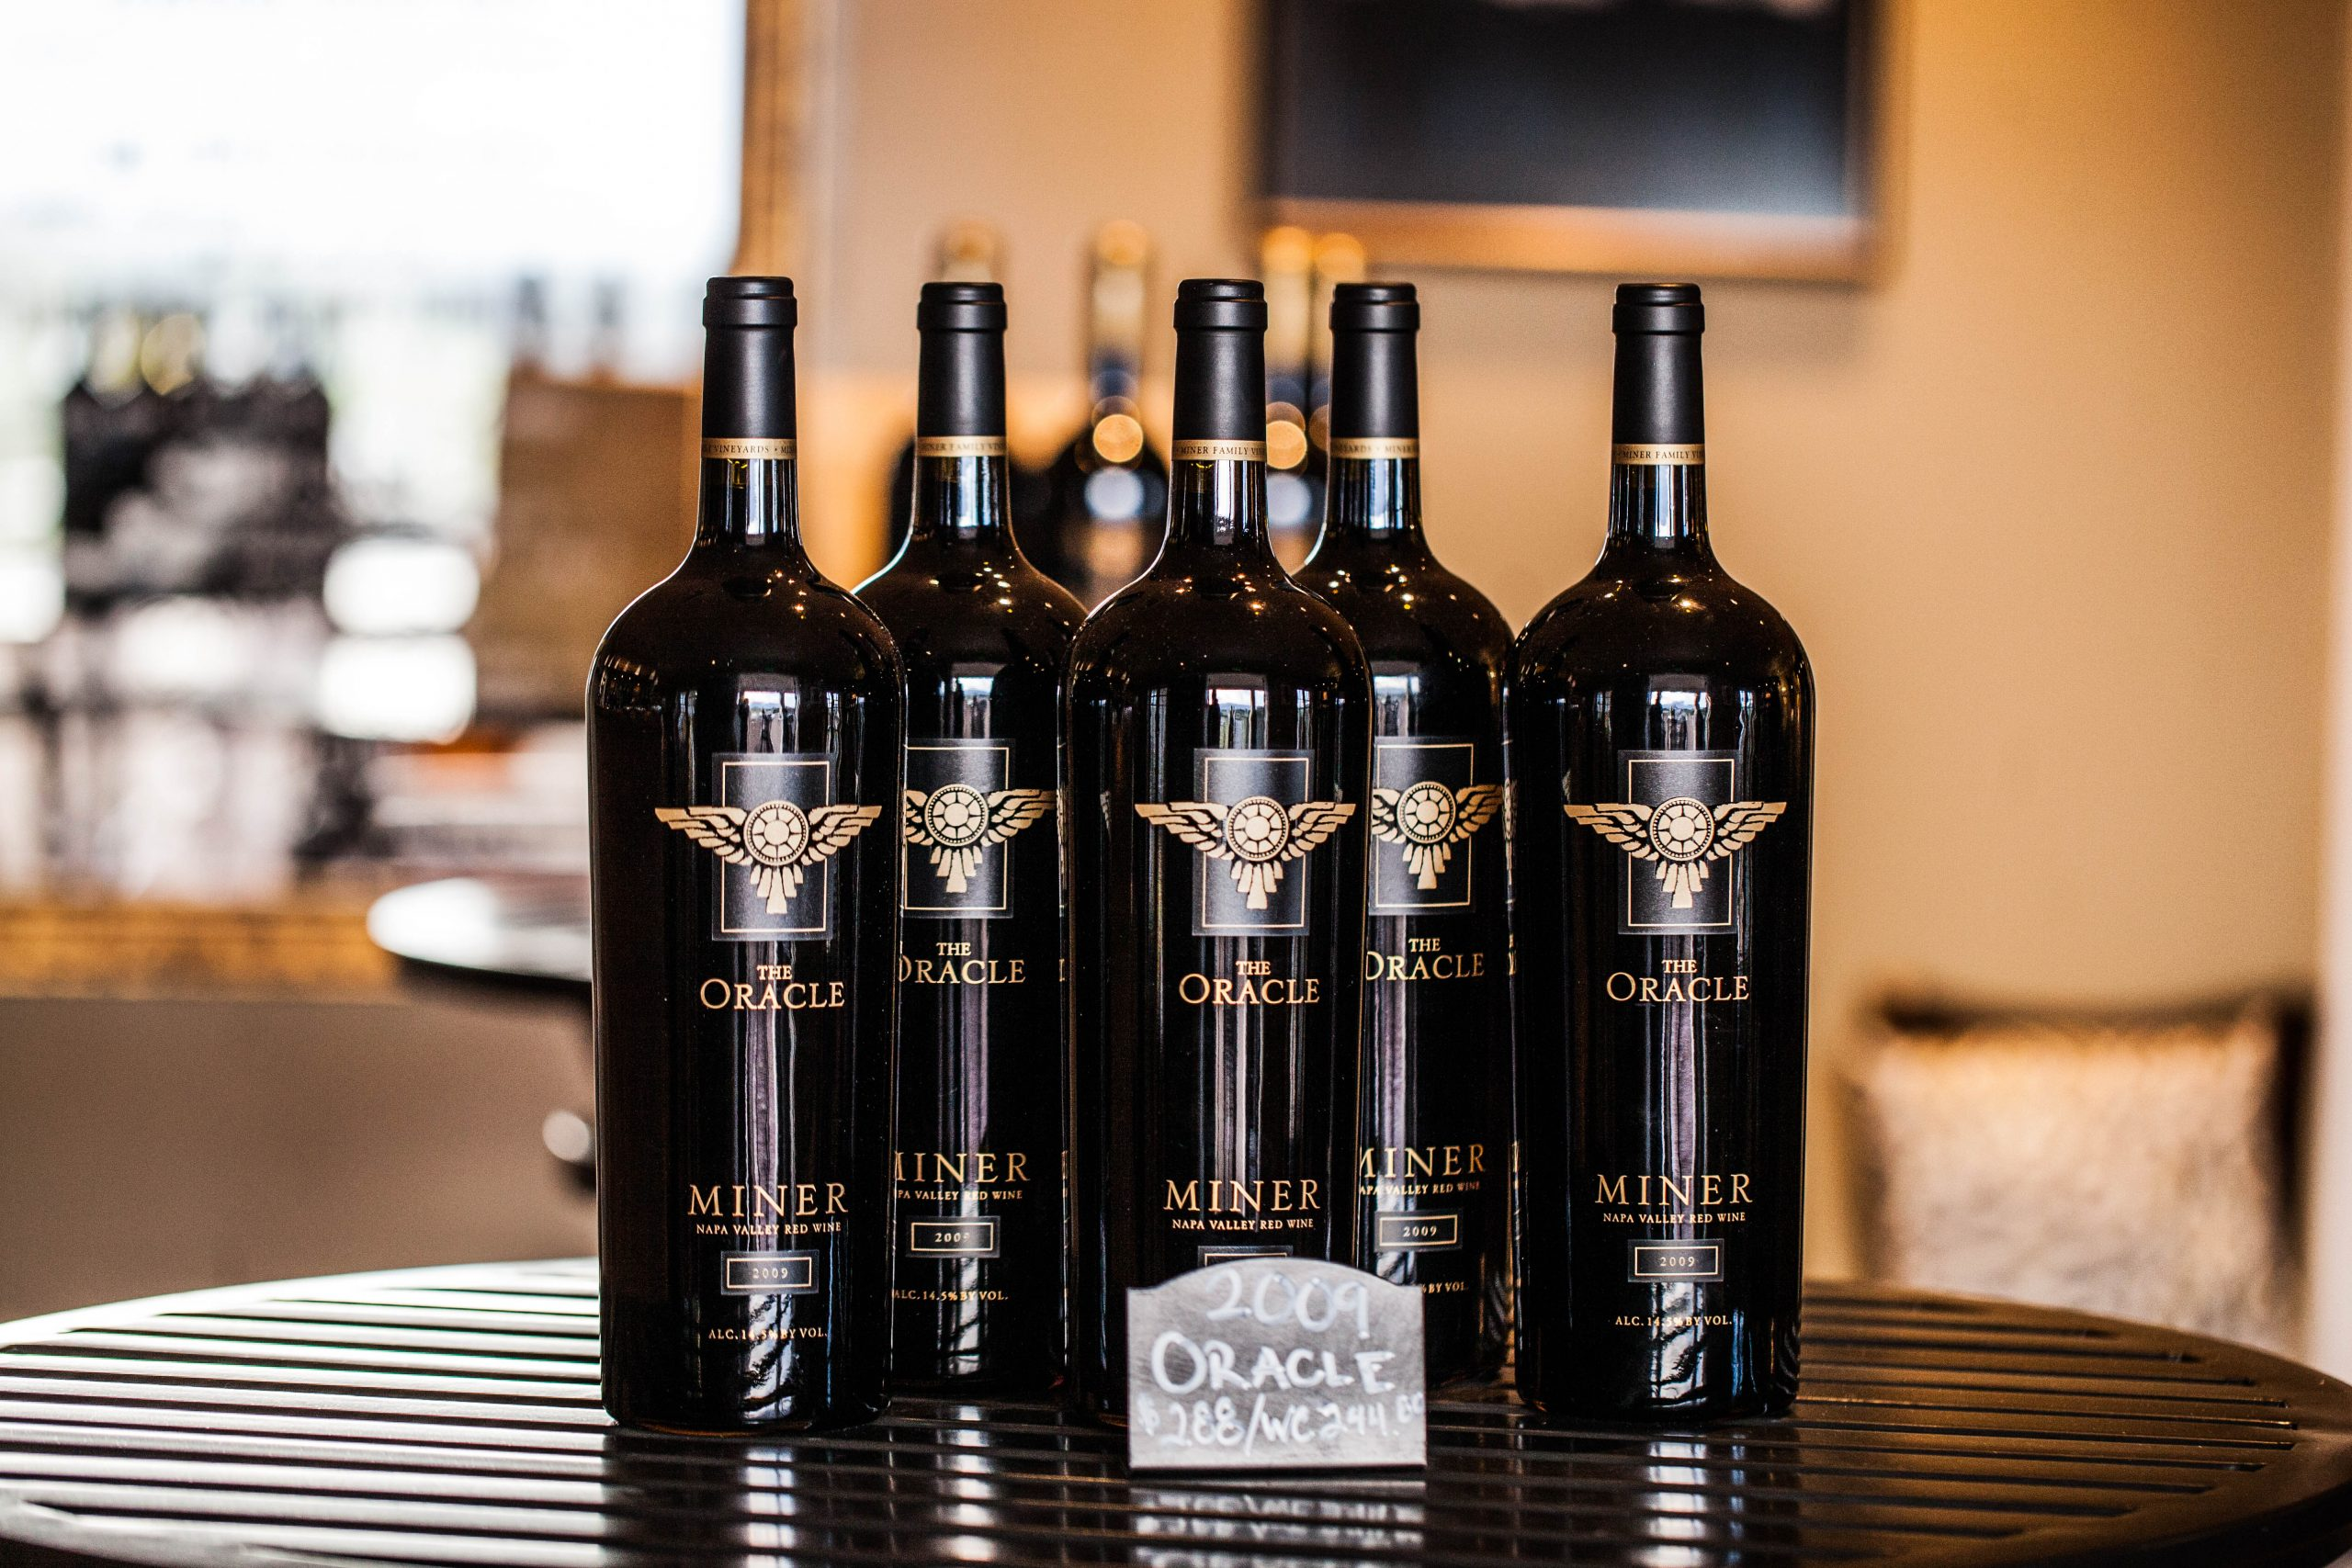 Miner Family Wine - The Oracle